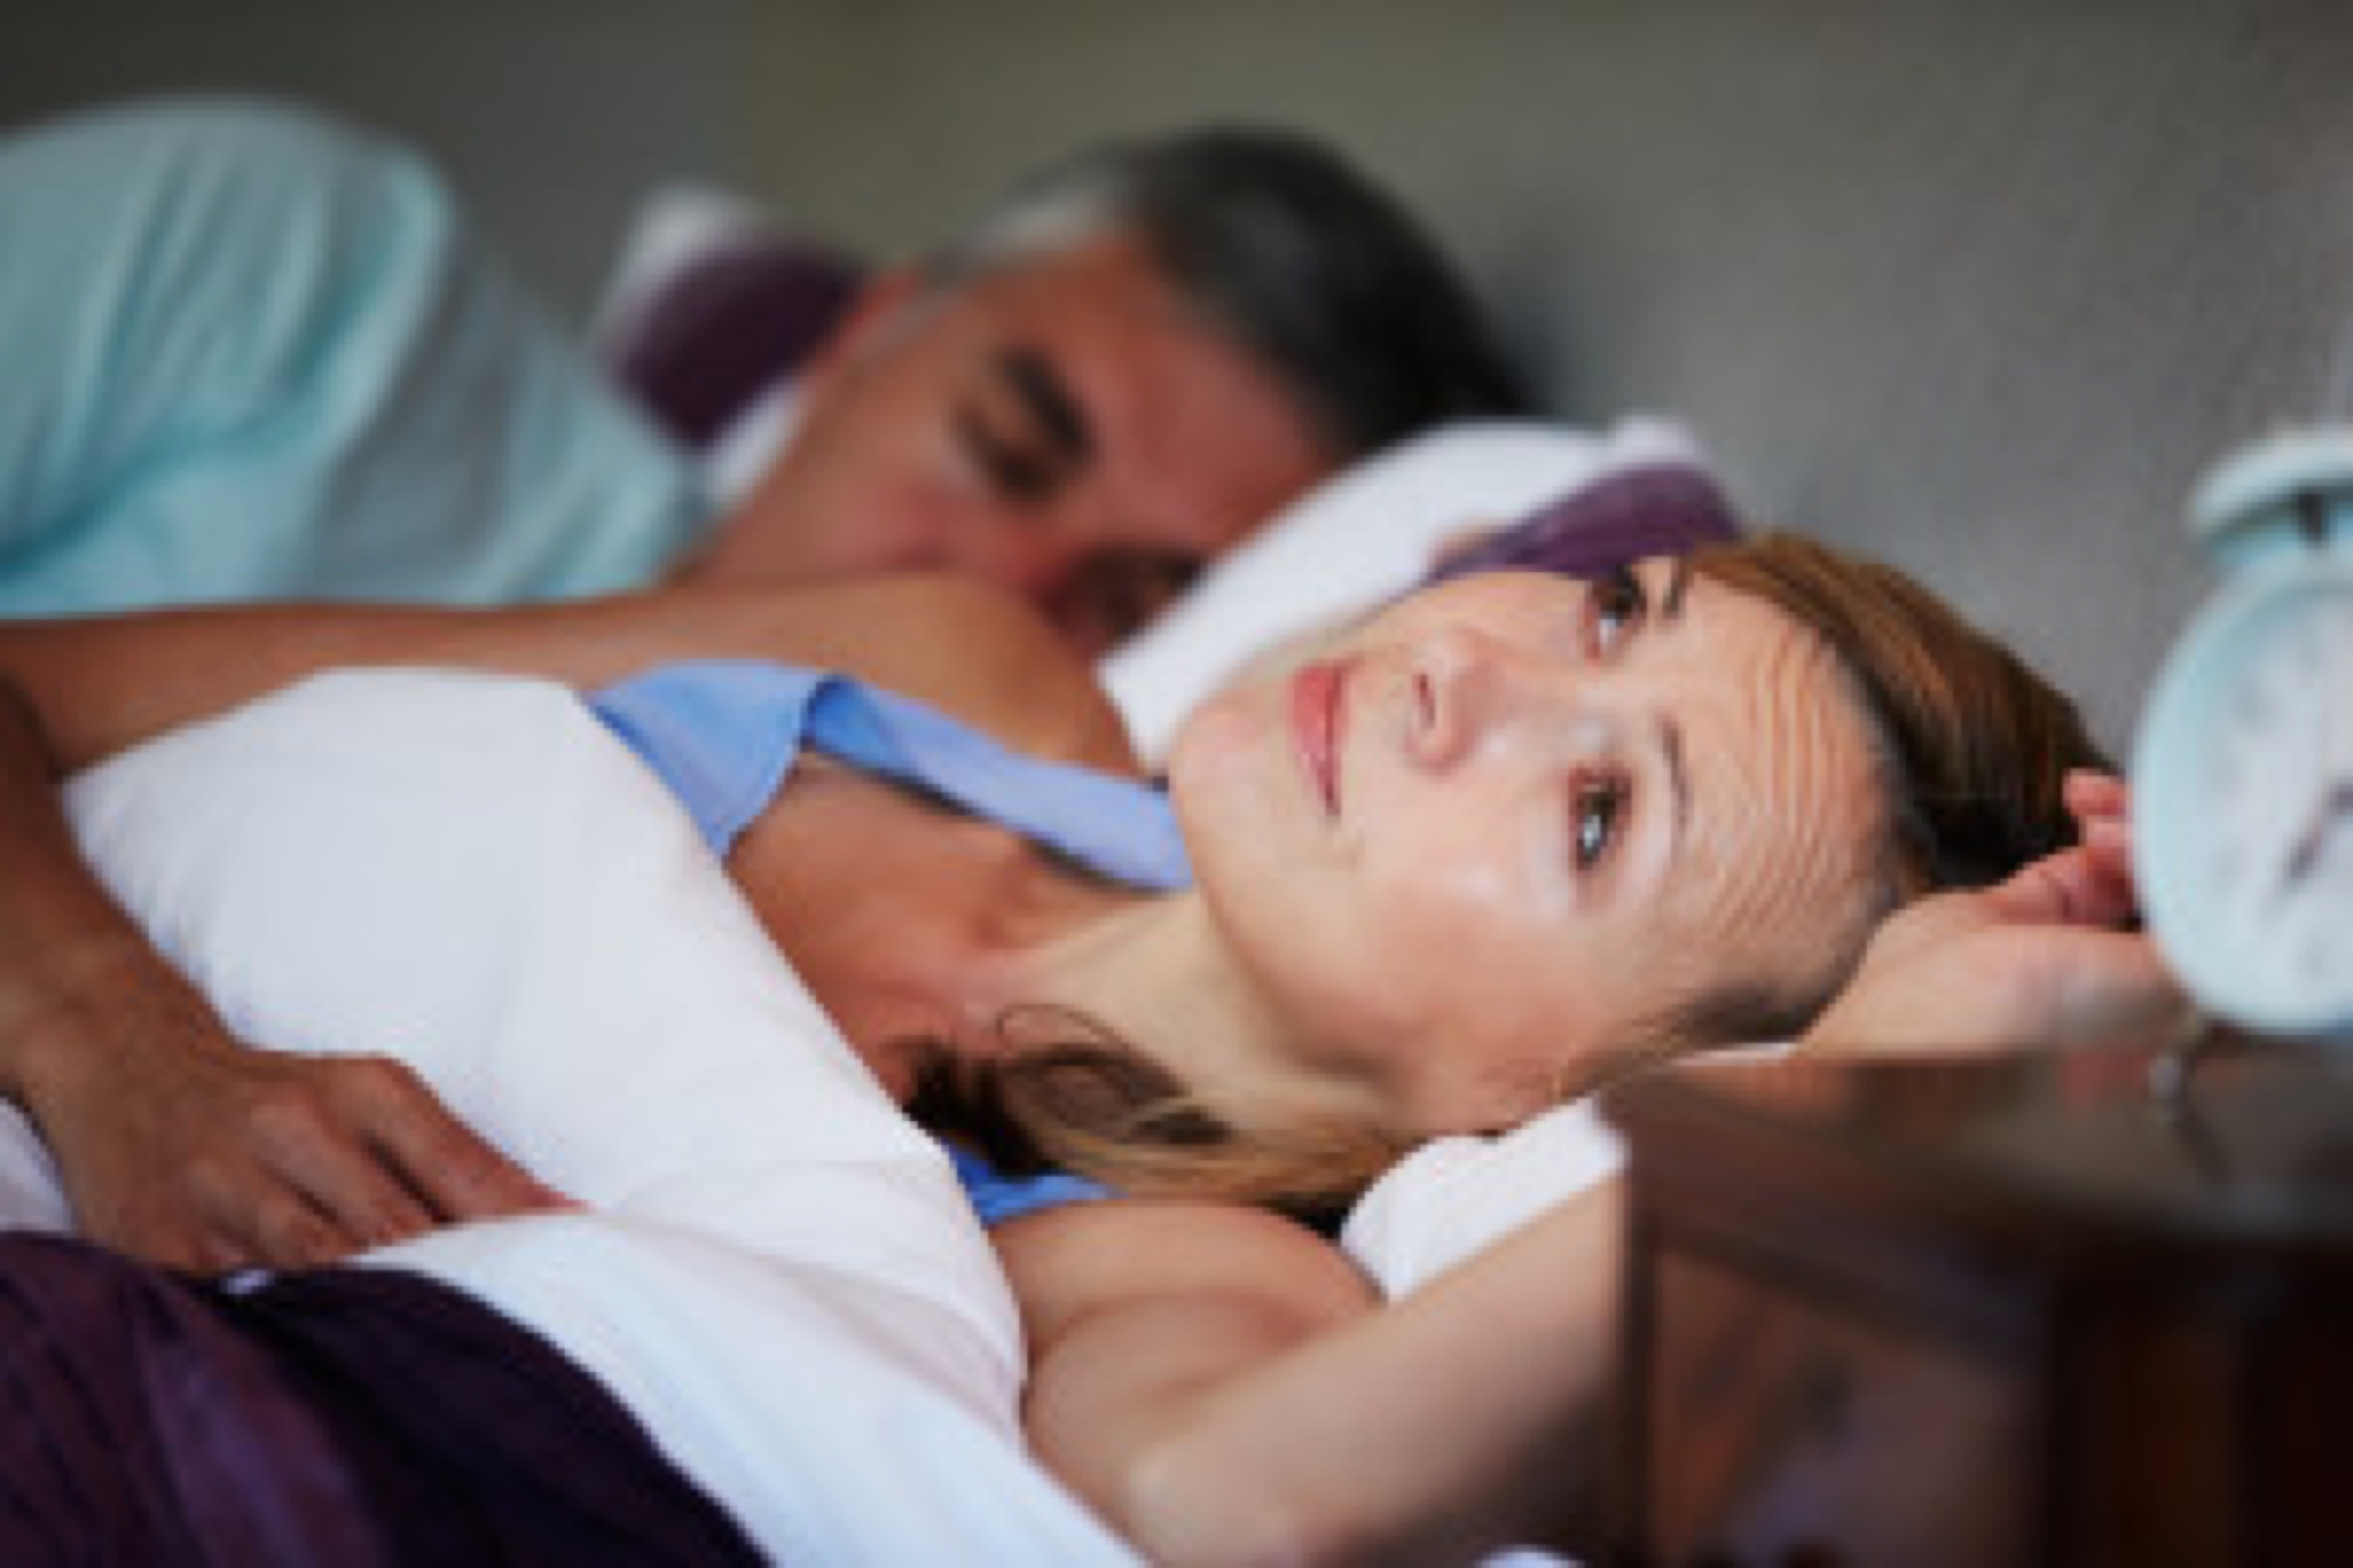 Couple In Bed With Wife Suffering From Insomnia Late At Night